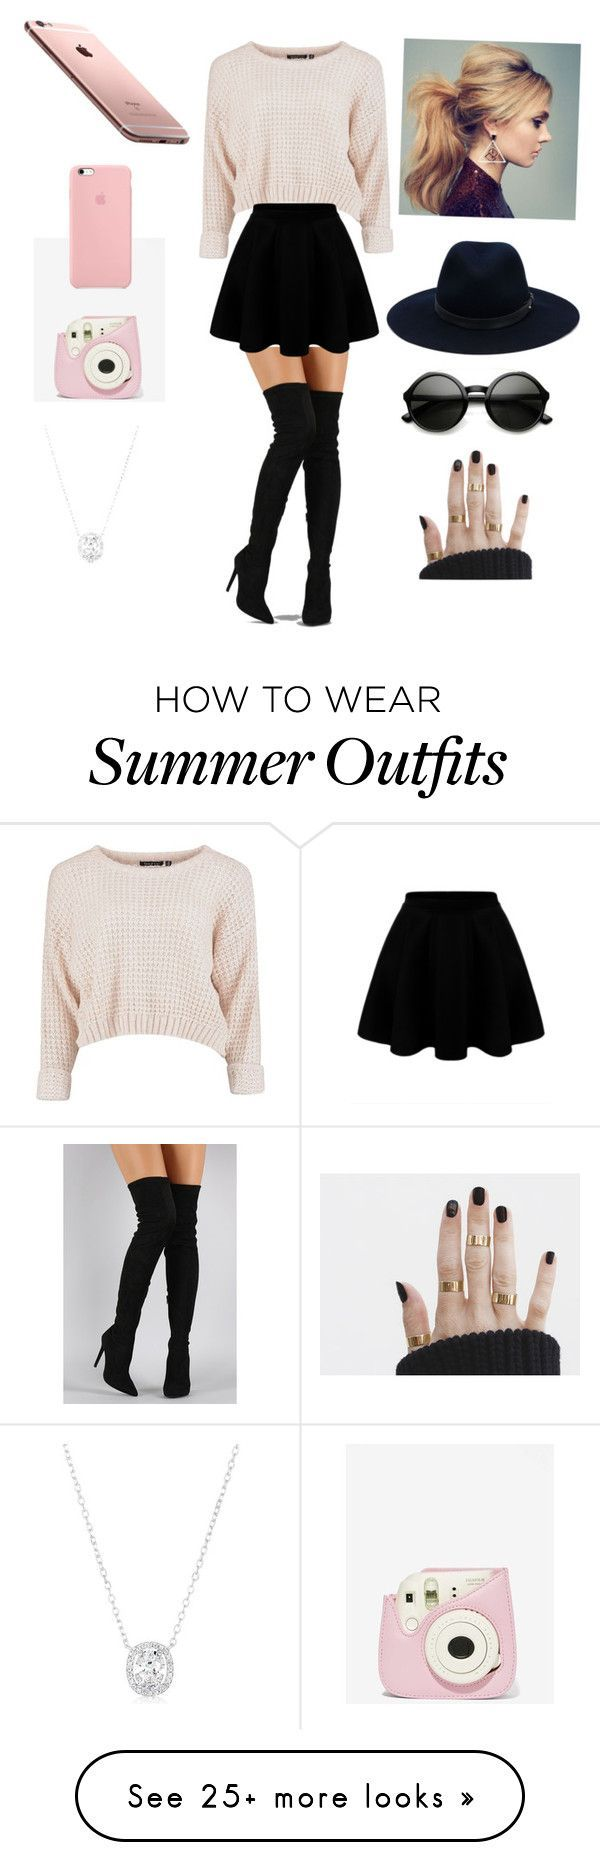 """""""cute out to go outfit """" by cos-stacy on Polyvore featuring Liliana and rag & bone"""